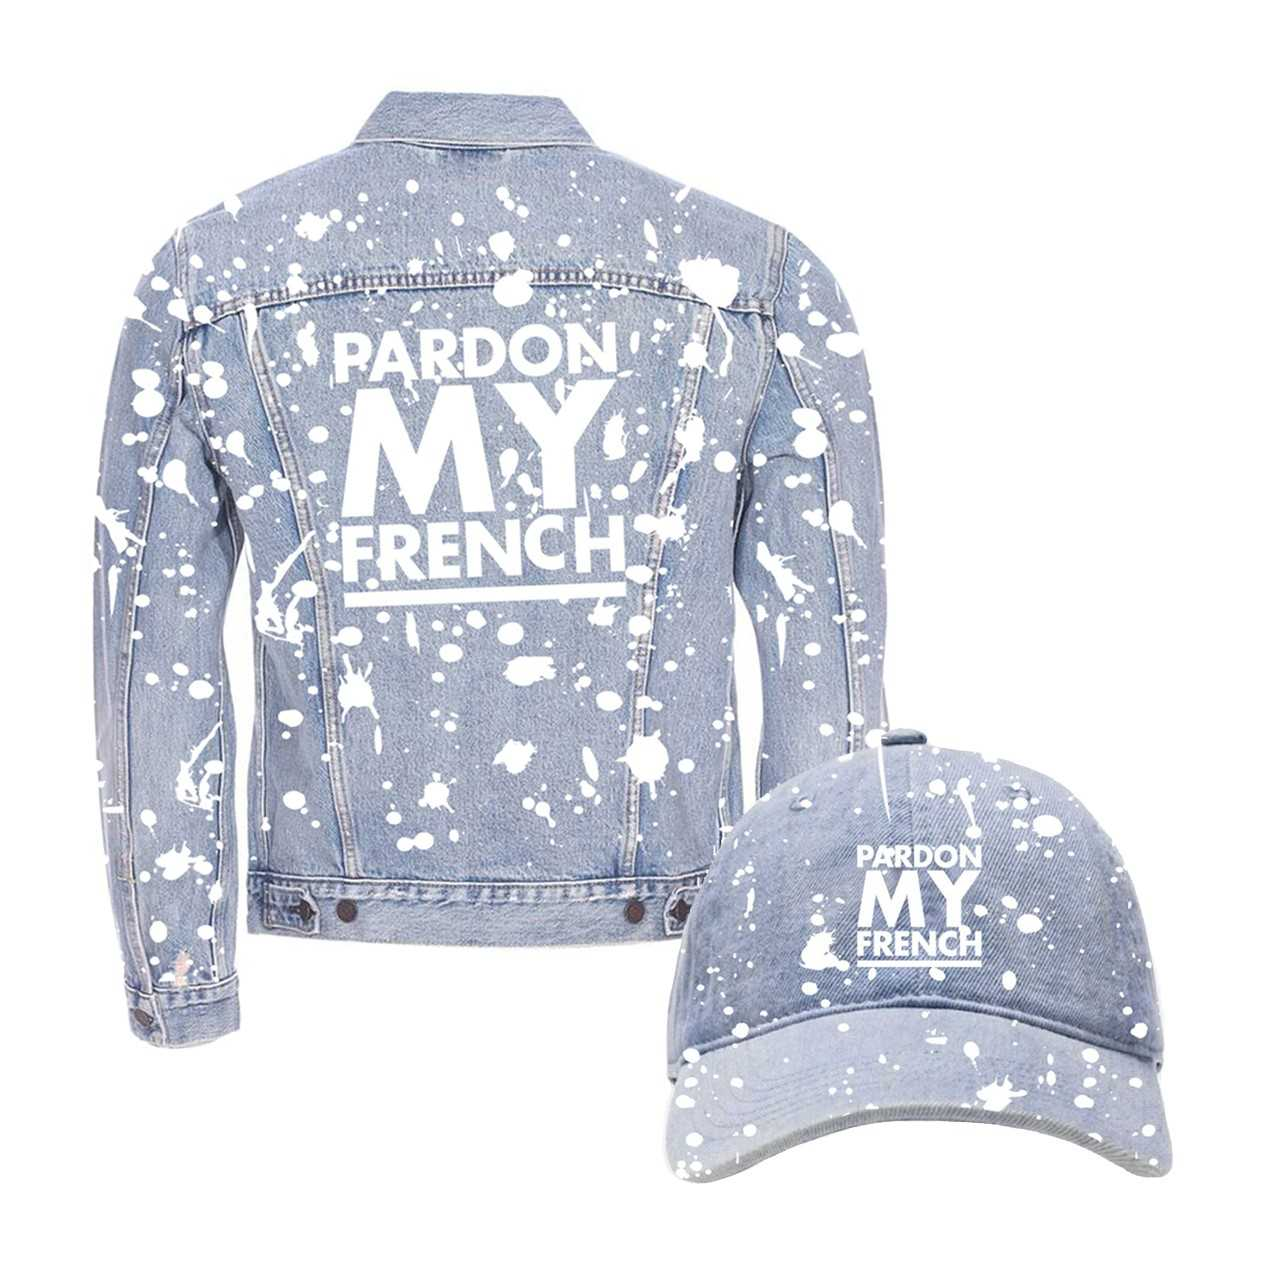 PARDON MY FRENCH DENIM JACKET/CAP BUNDLE